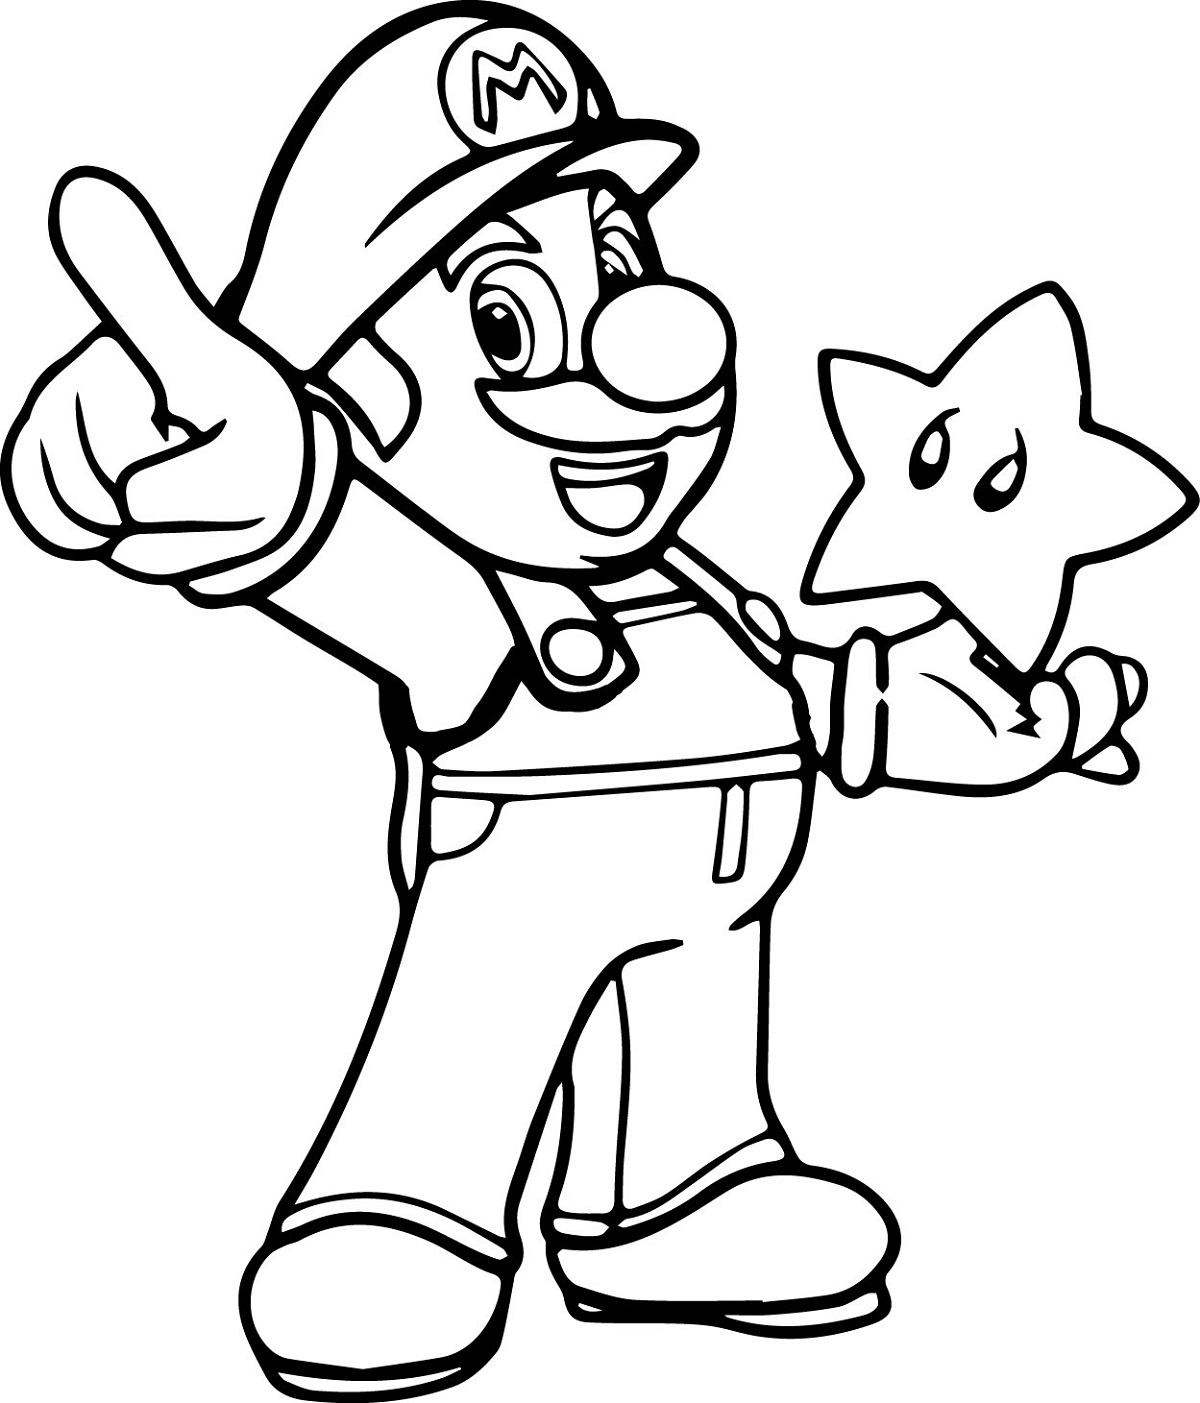 mario coloring pages 5